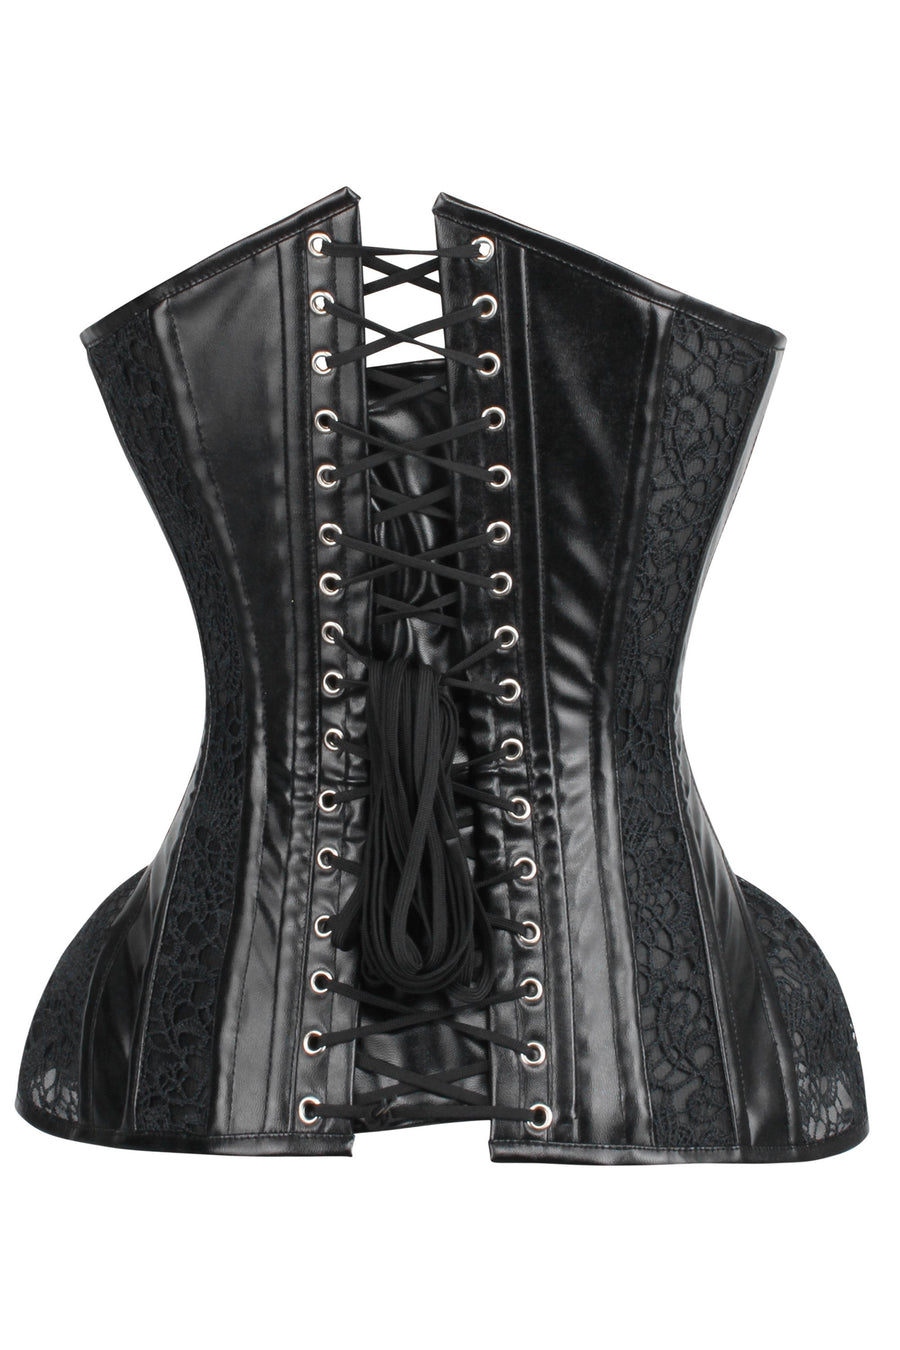 PVC Overbust Corset with Hip Panels